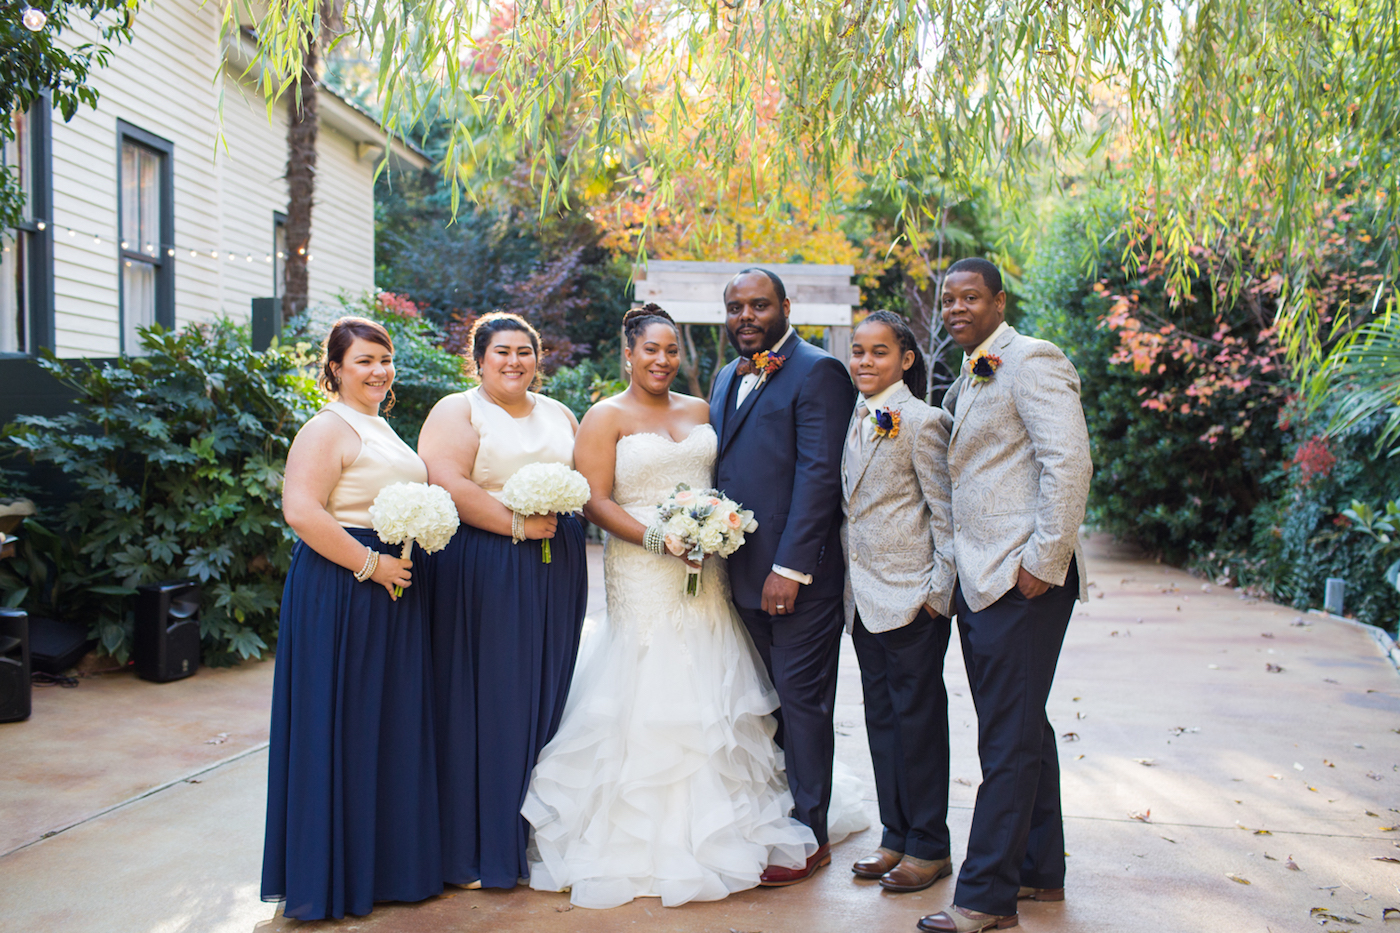 Wedding Venues In Lexington Sc | Intimate Garden Wedding The Big Fat African Wedding